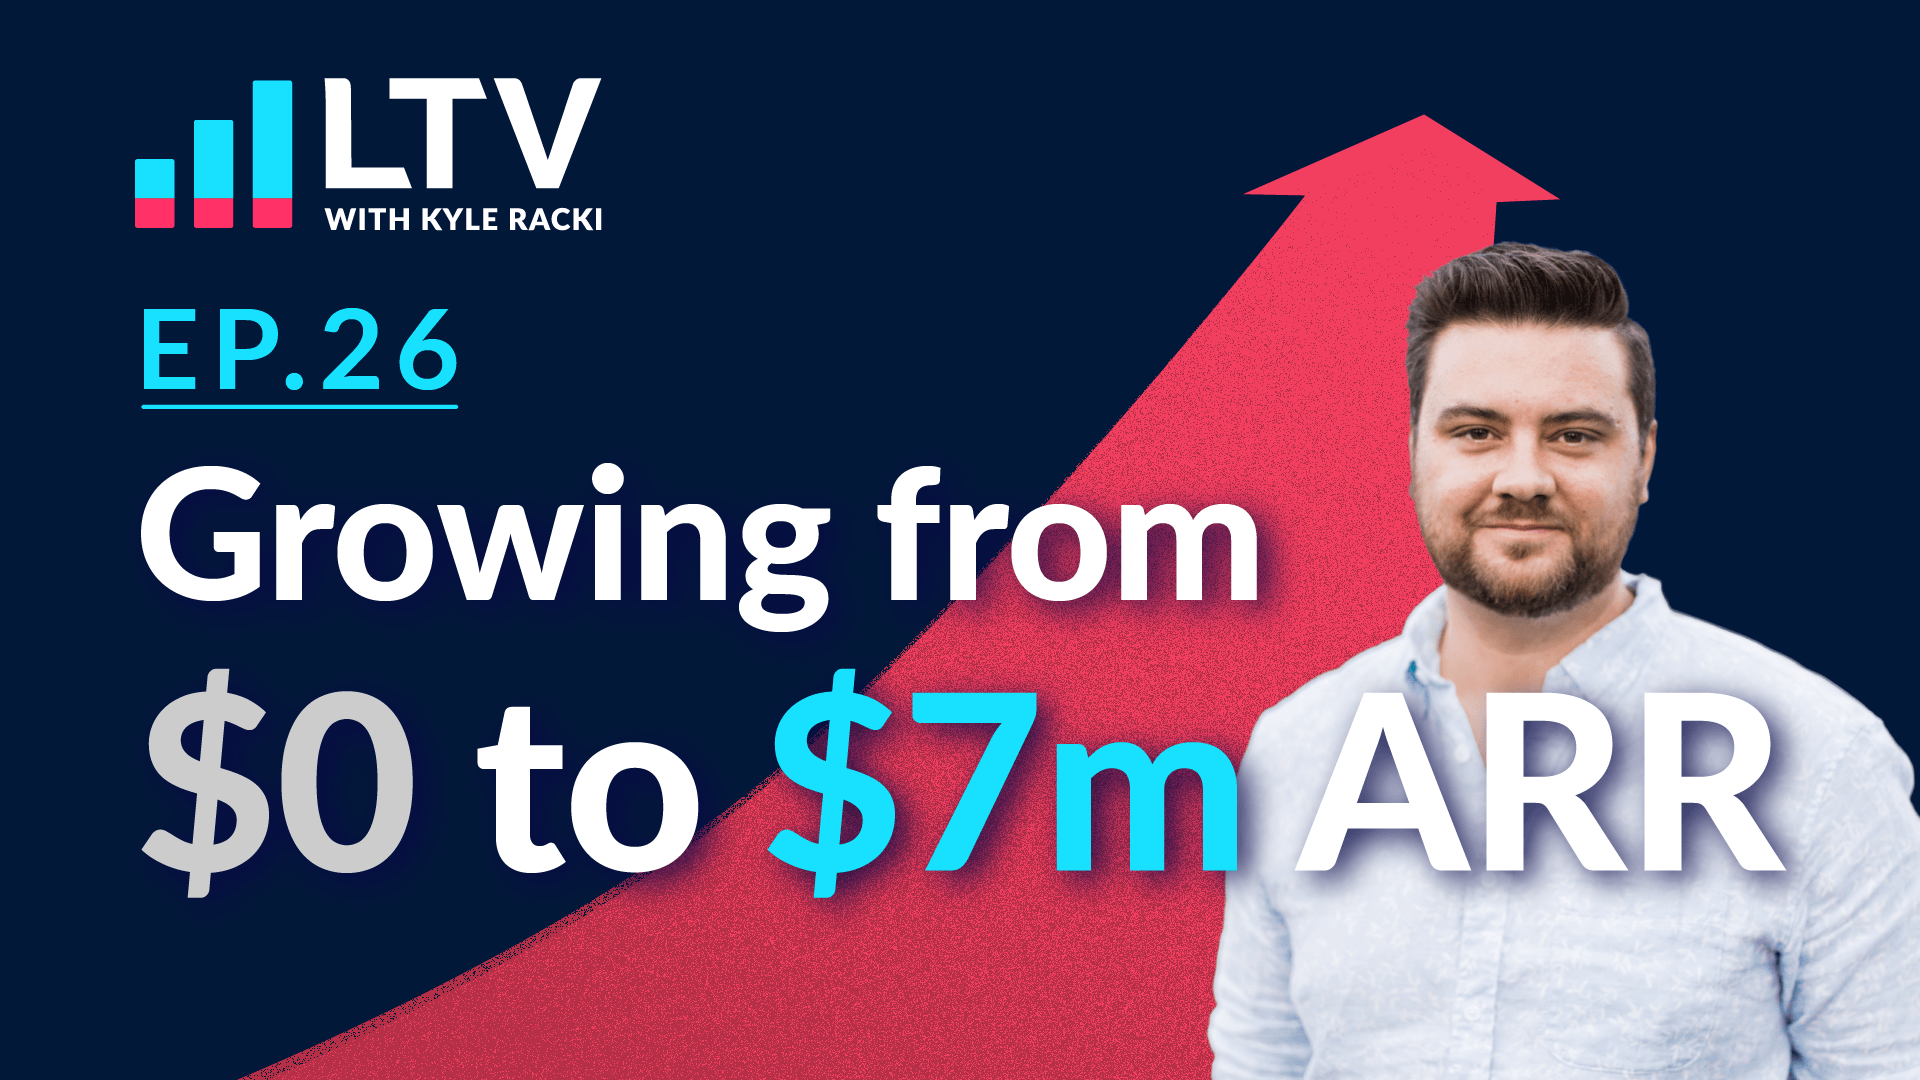 LTV Podcast episode 26: Growing from $0 o $7m ARR